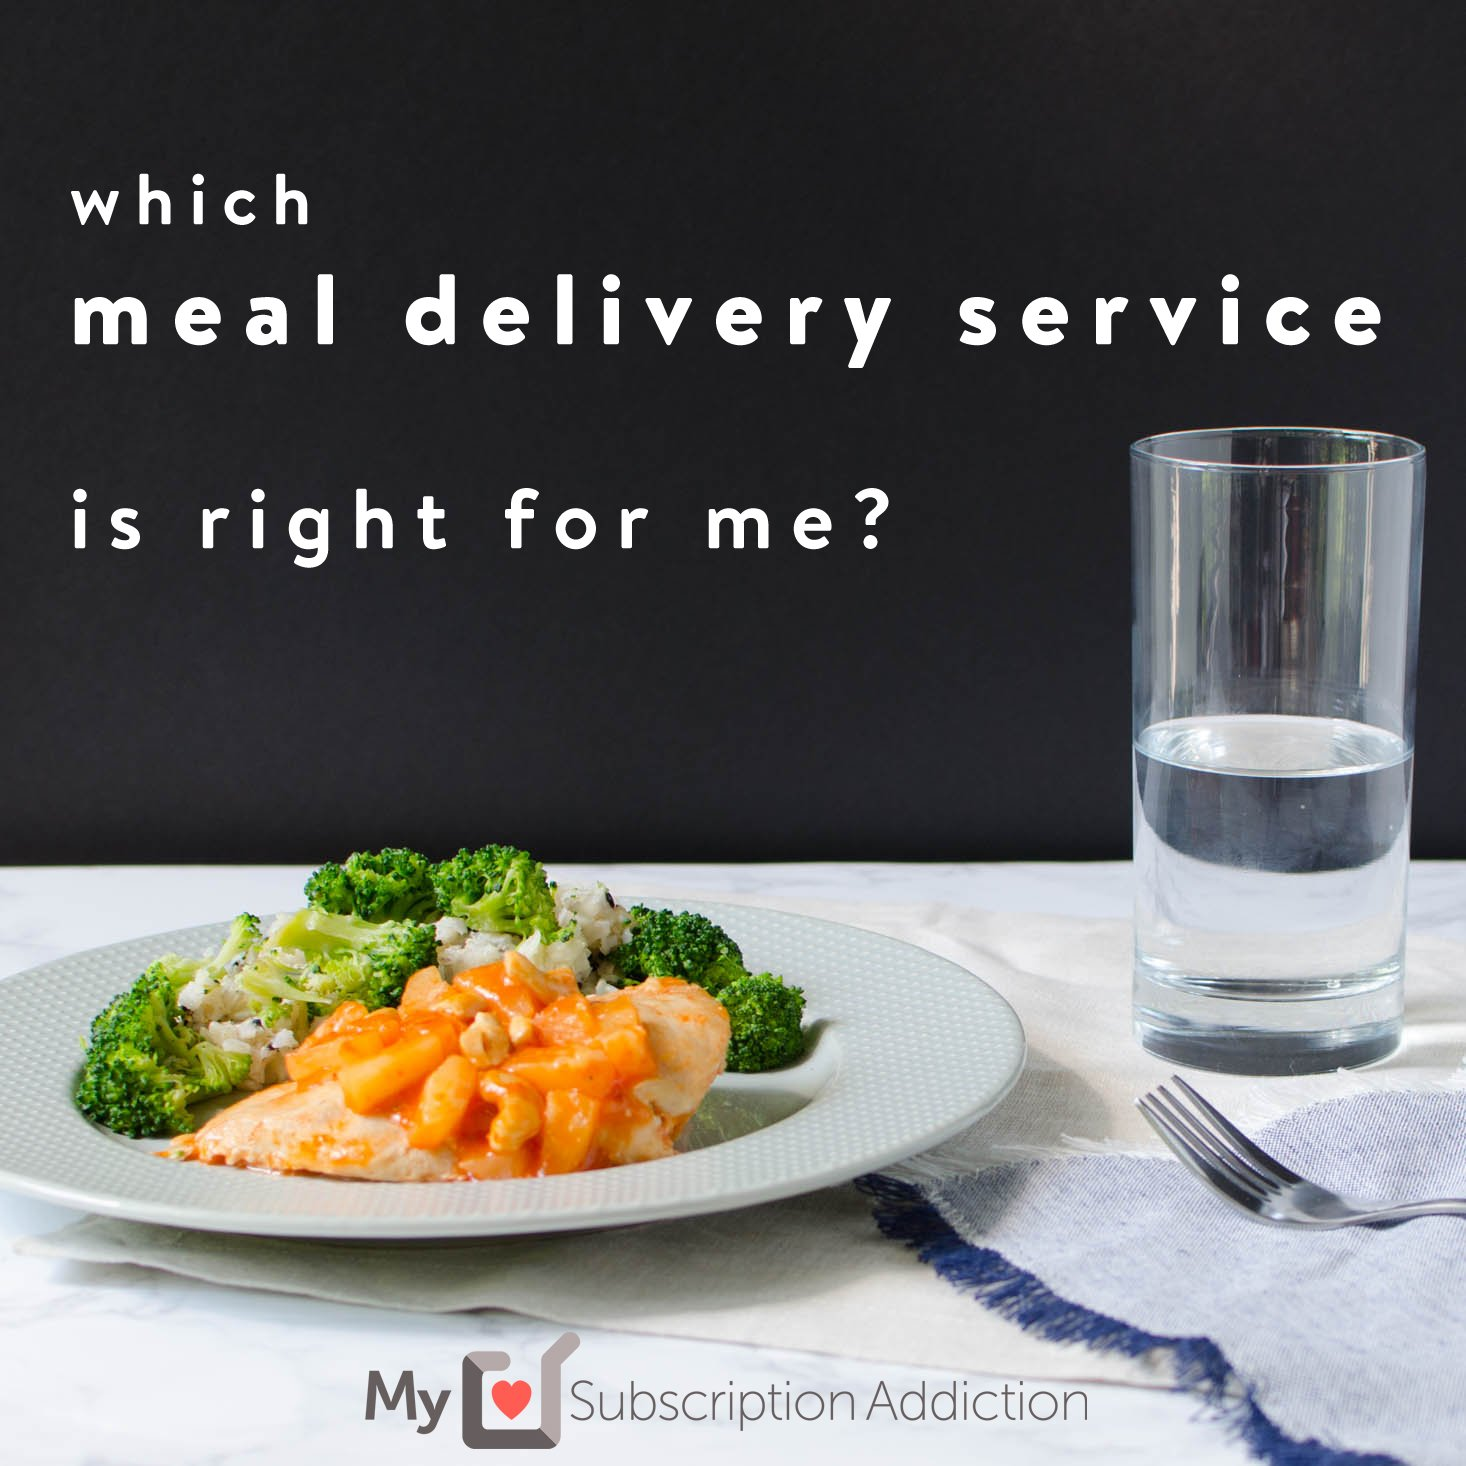 Which meal delivery service is right for me?